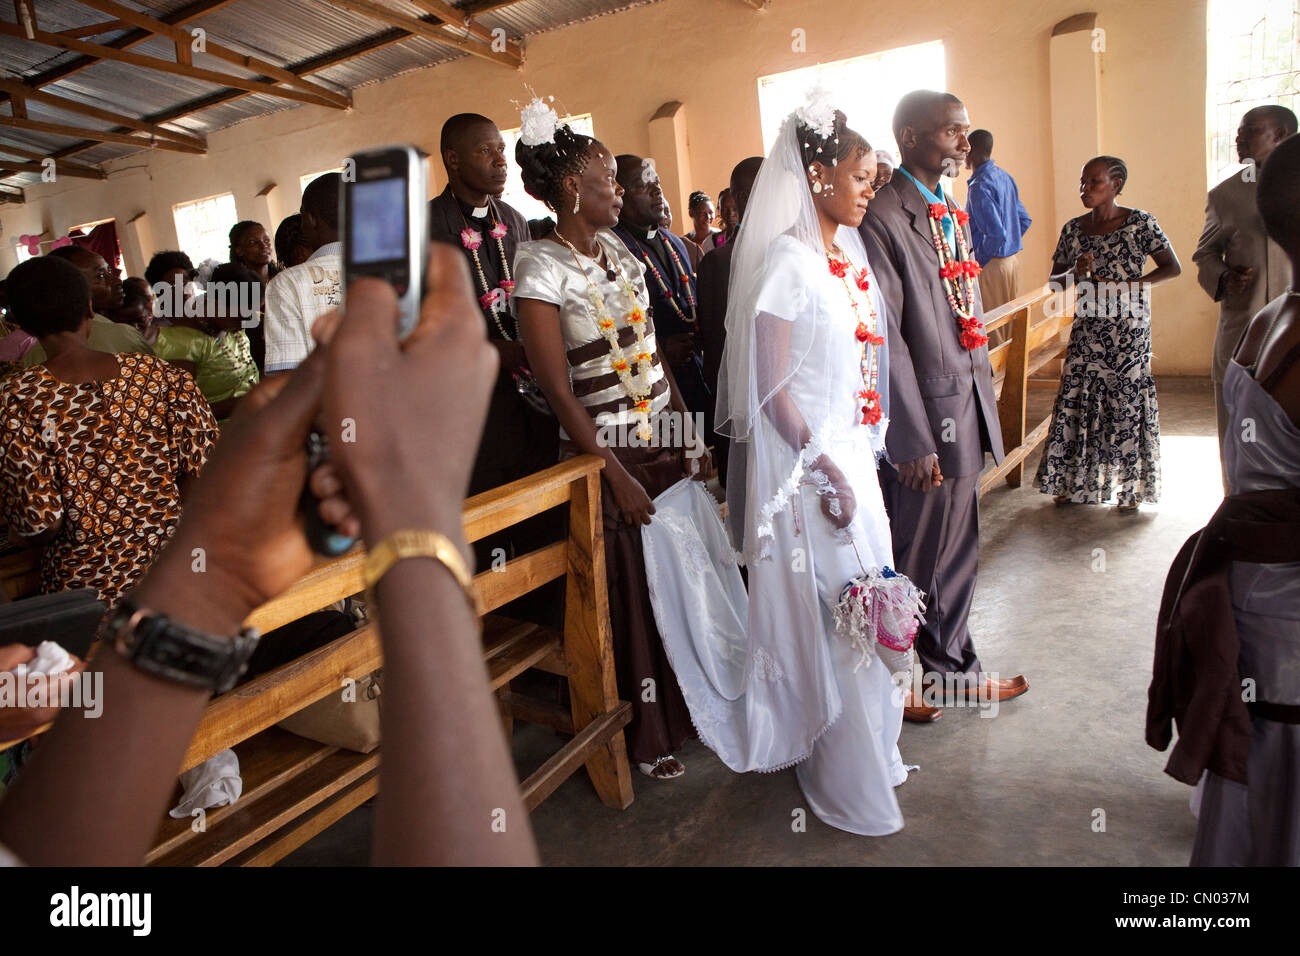 A bride and groom exit the church after their wedding ceremony in Tanzania, East Africa. Stock Photo